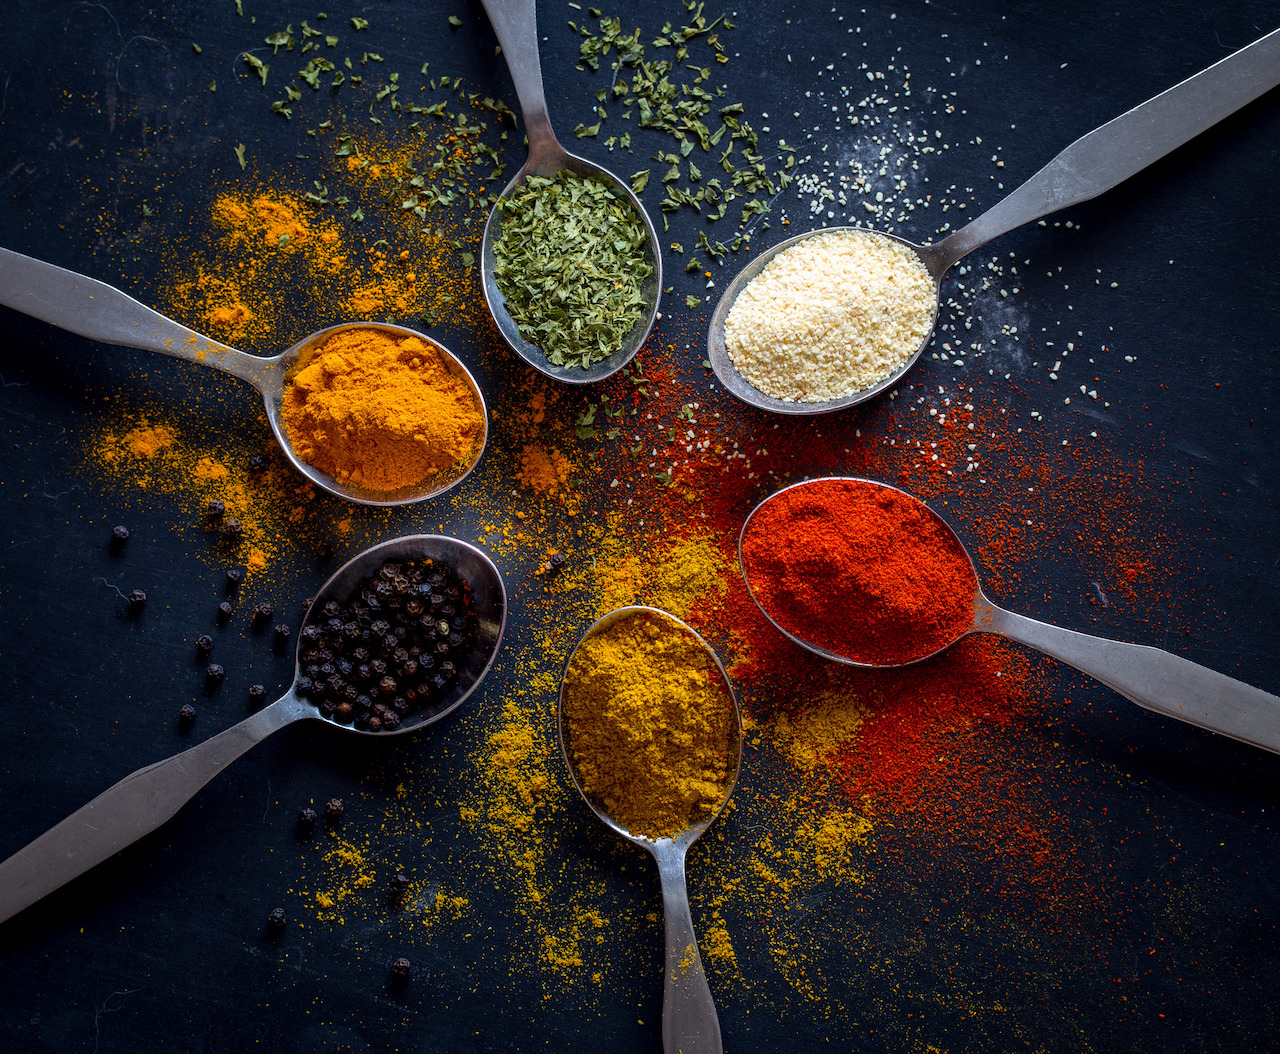 How the world's top chefs use spices